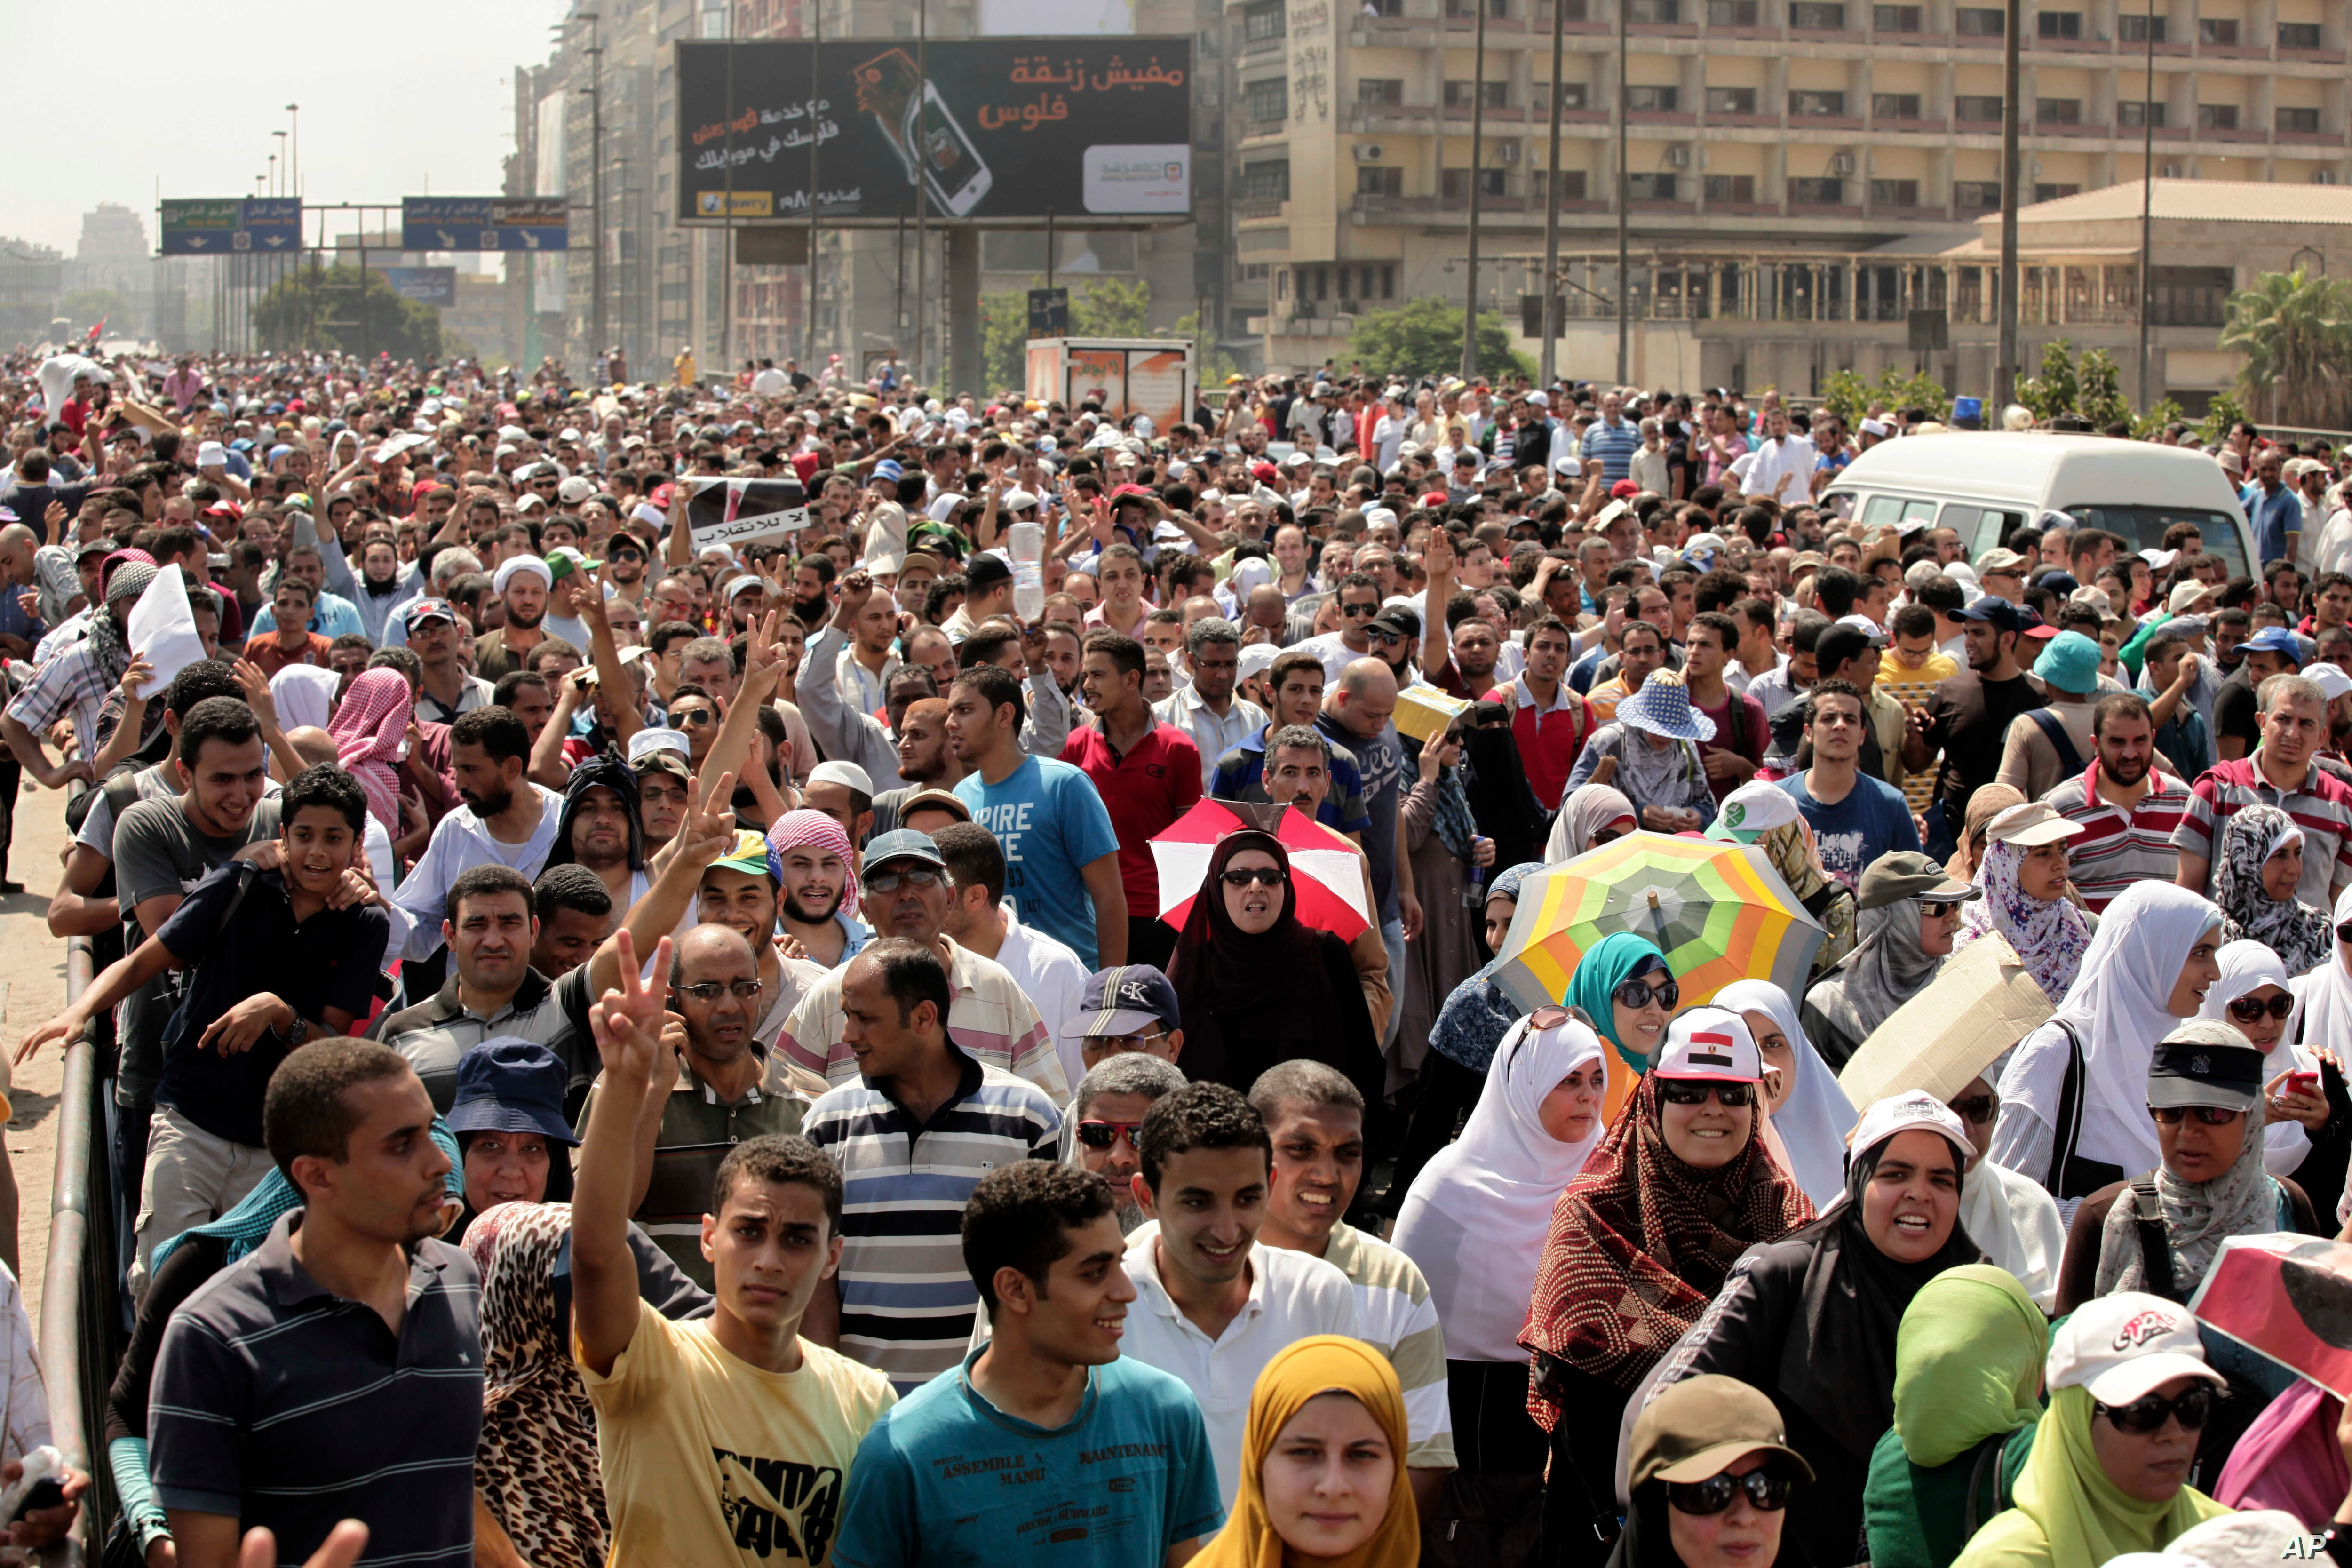 Supporters of ousted Egyptian President Mohamed Morsi cross the Nile as they march towards downtown Cairo from the Mohandeseen neighborhood of Cairo, Egypt, Aug. 16, 2013.